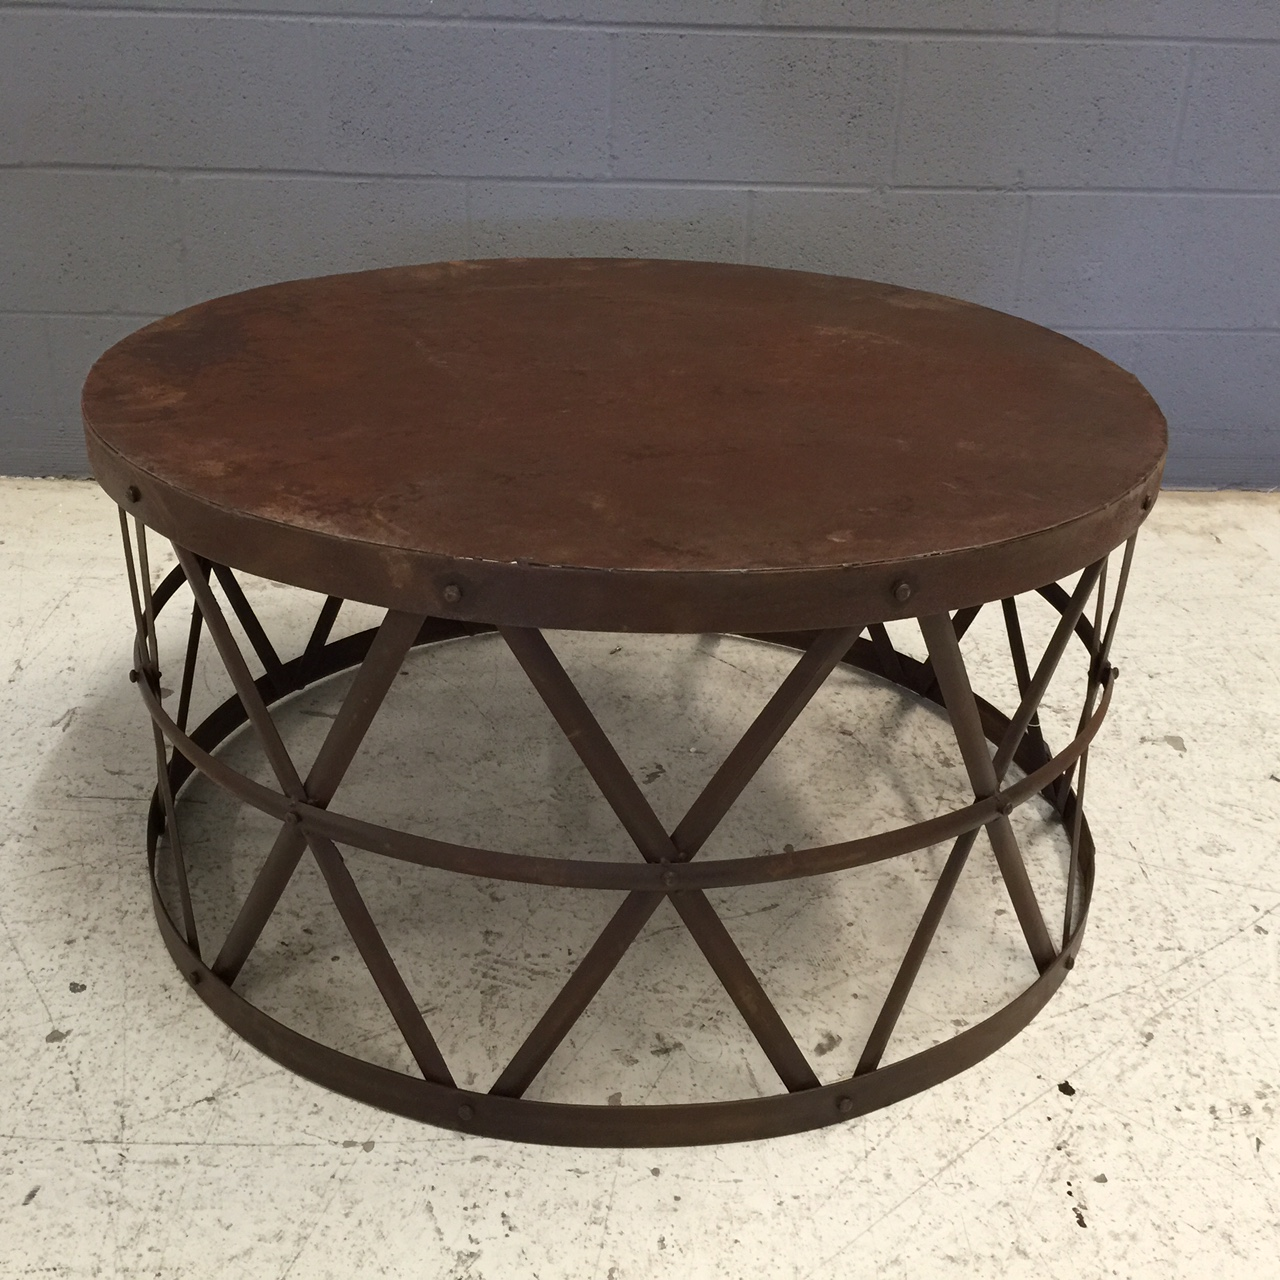 Low Metal And Glass Coffee Table: Round Metal Coffee Table